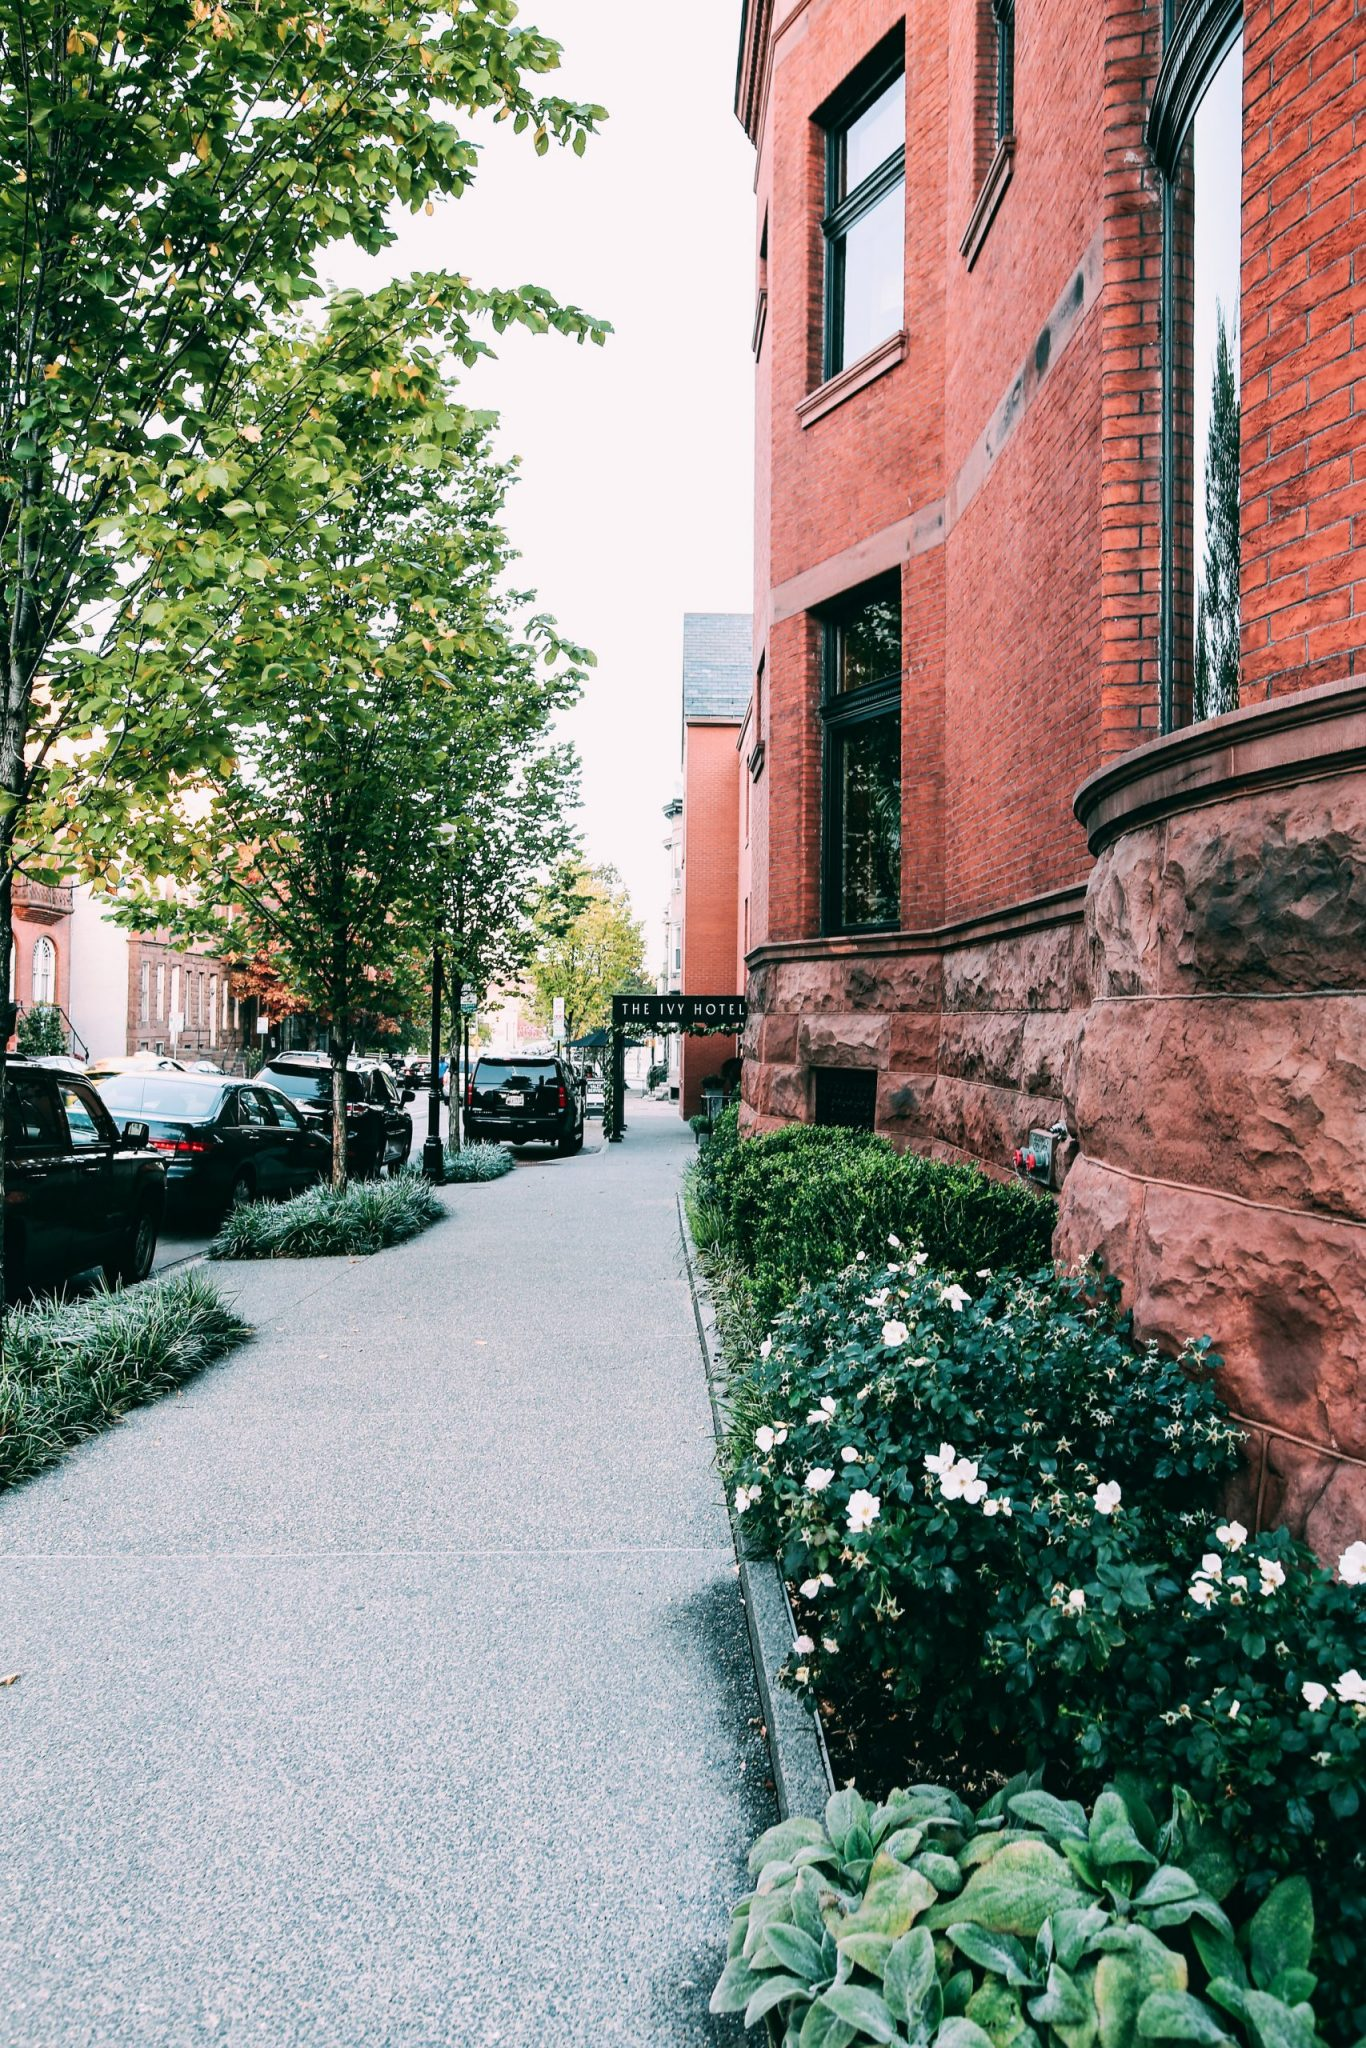 Street view of the ivy